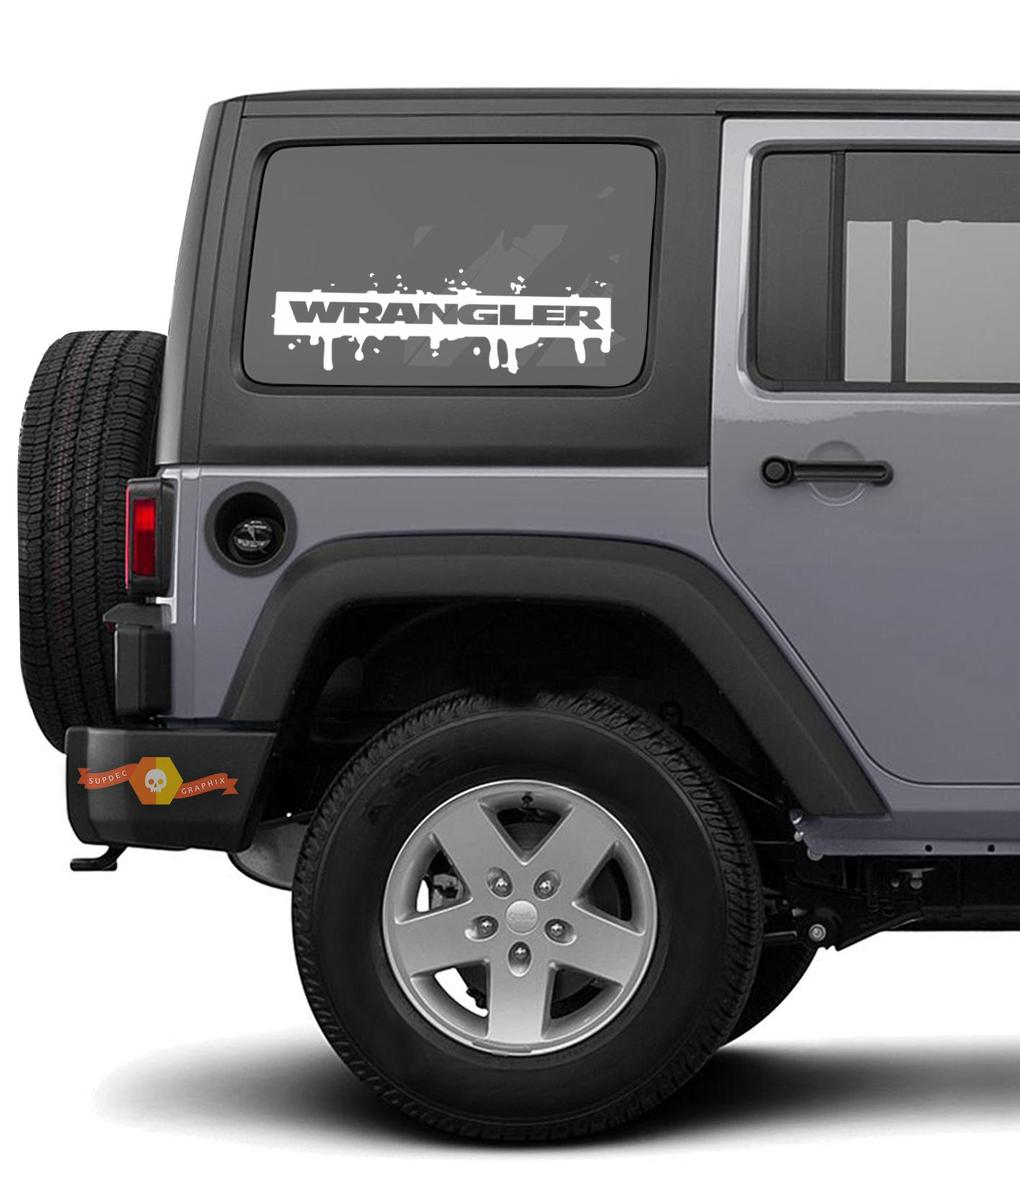 Product 2pcs wrangler splash side window decal sets graphic jeep wrangler rubicon sahara